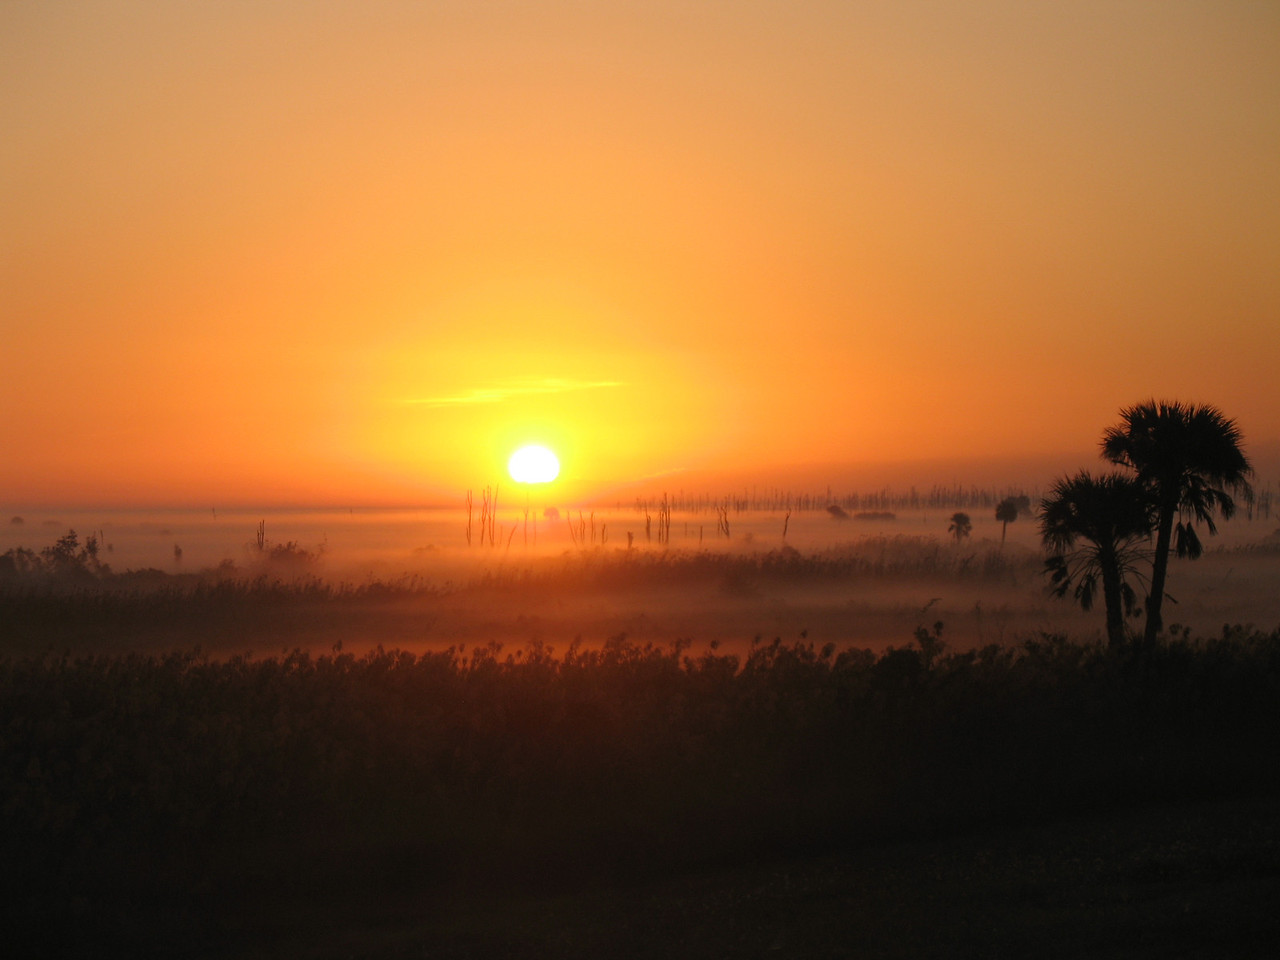 Sunrise over the Okeechobee marshes<br /> Photo by Sandra Friend